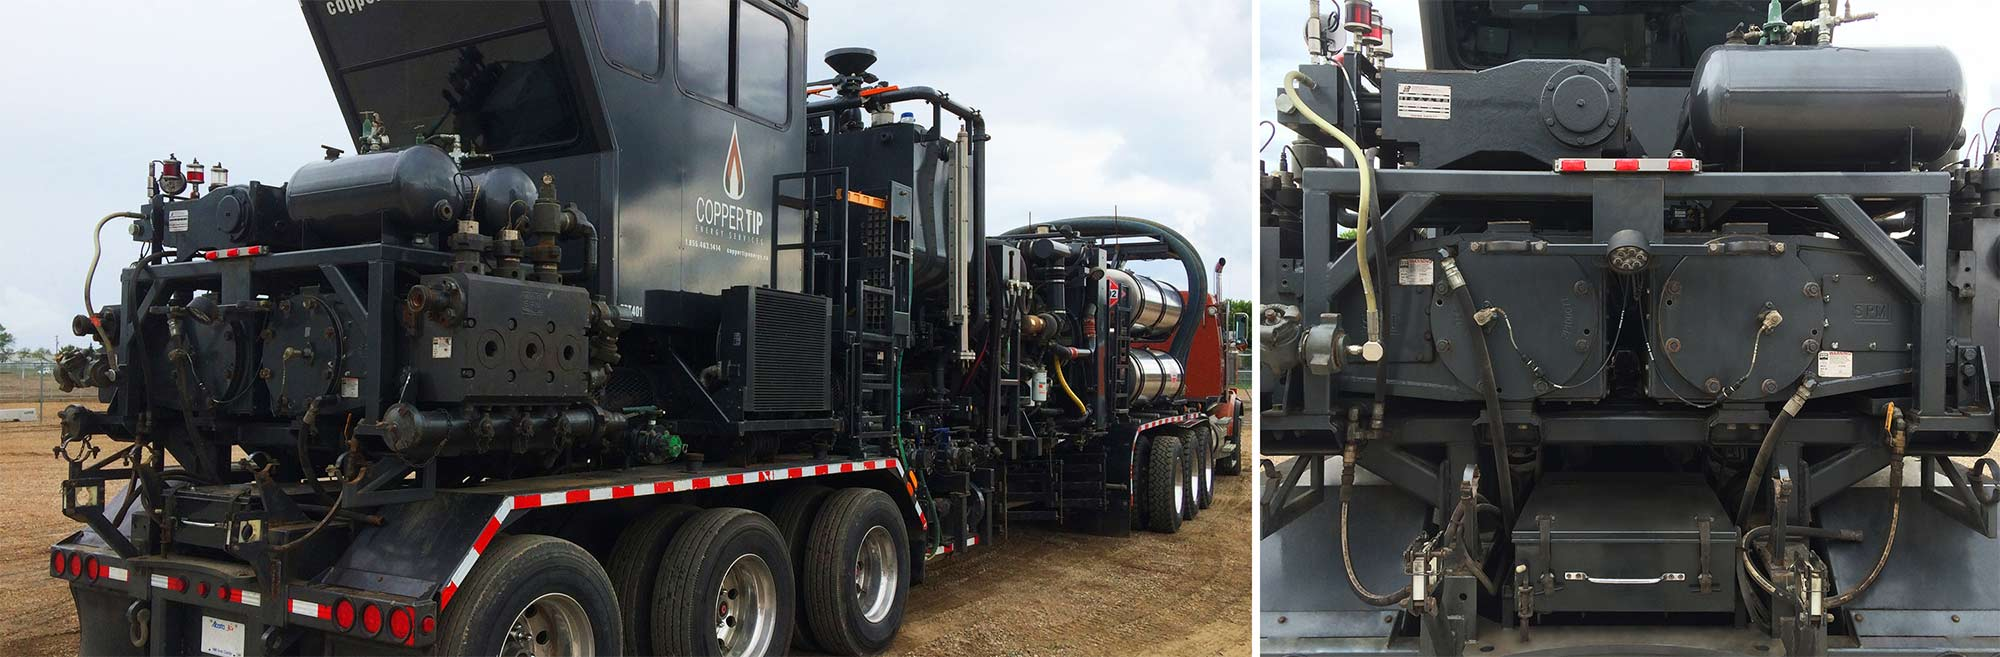 Trailer Mounted Coiled Tubing Units additionally Rig Assist Trailer Ratreg furthermore Coiled Tubing Pumping Units additionally Coiled Tubing Units also Snubbing Unit. on trailer mounted coiled tubing units